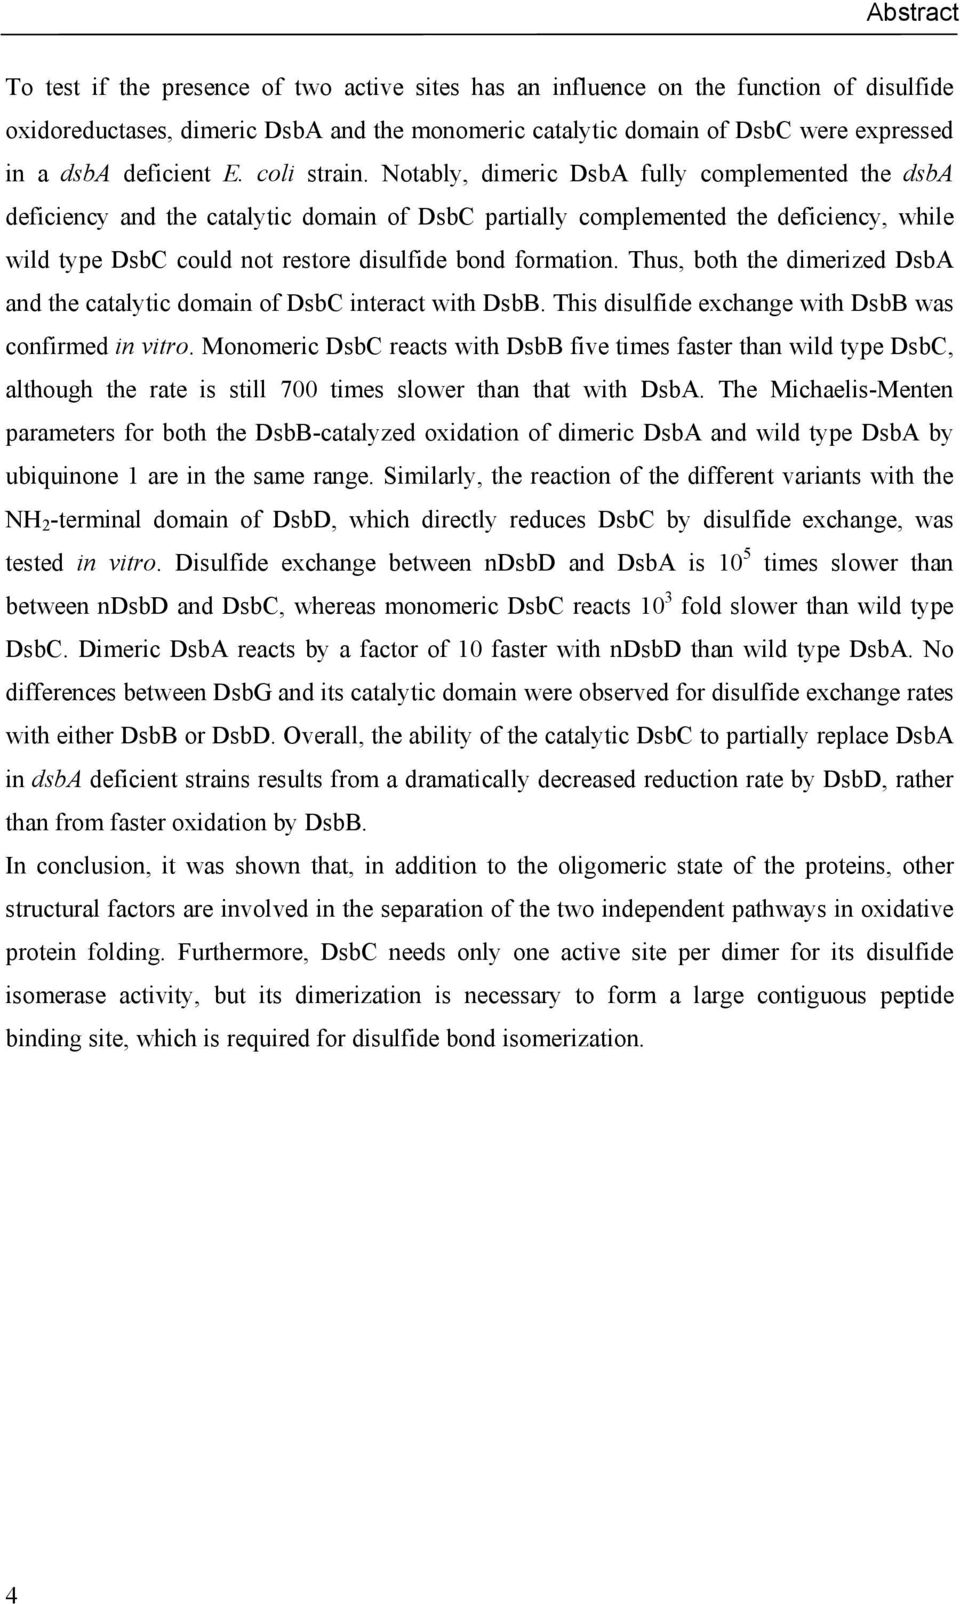 Notably, dimeric DsbA fully complemented the dsba deficiency and the catalytic domain of DsbC partially complemented the deficiency, while wild type DsbC could not restore disulfide bond formation.